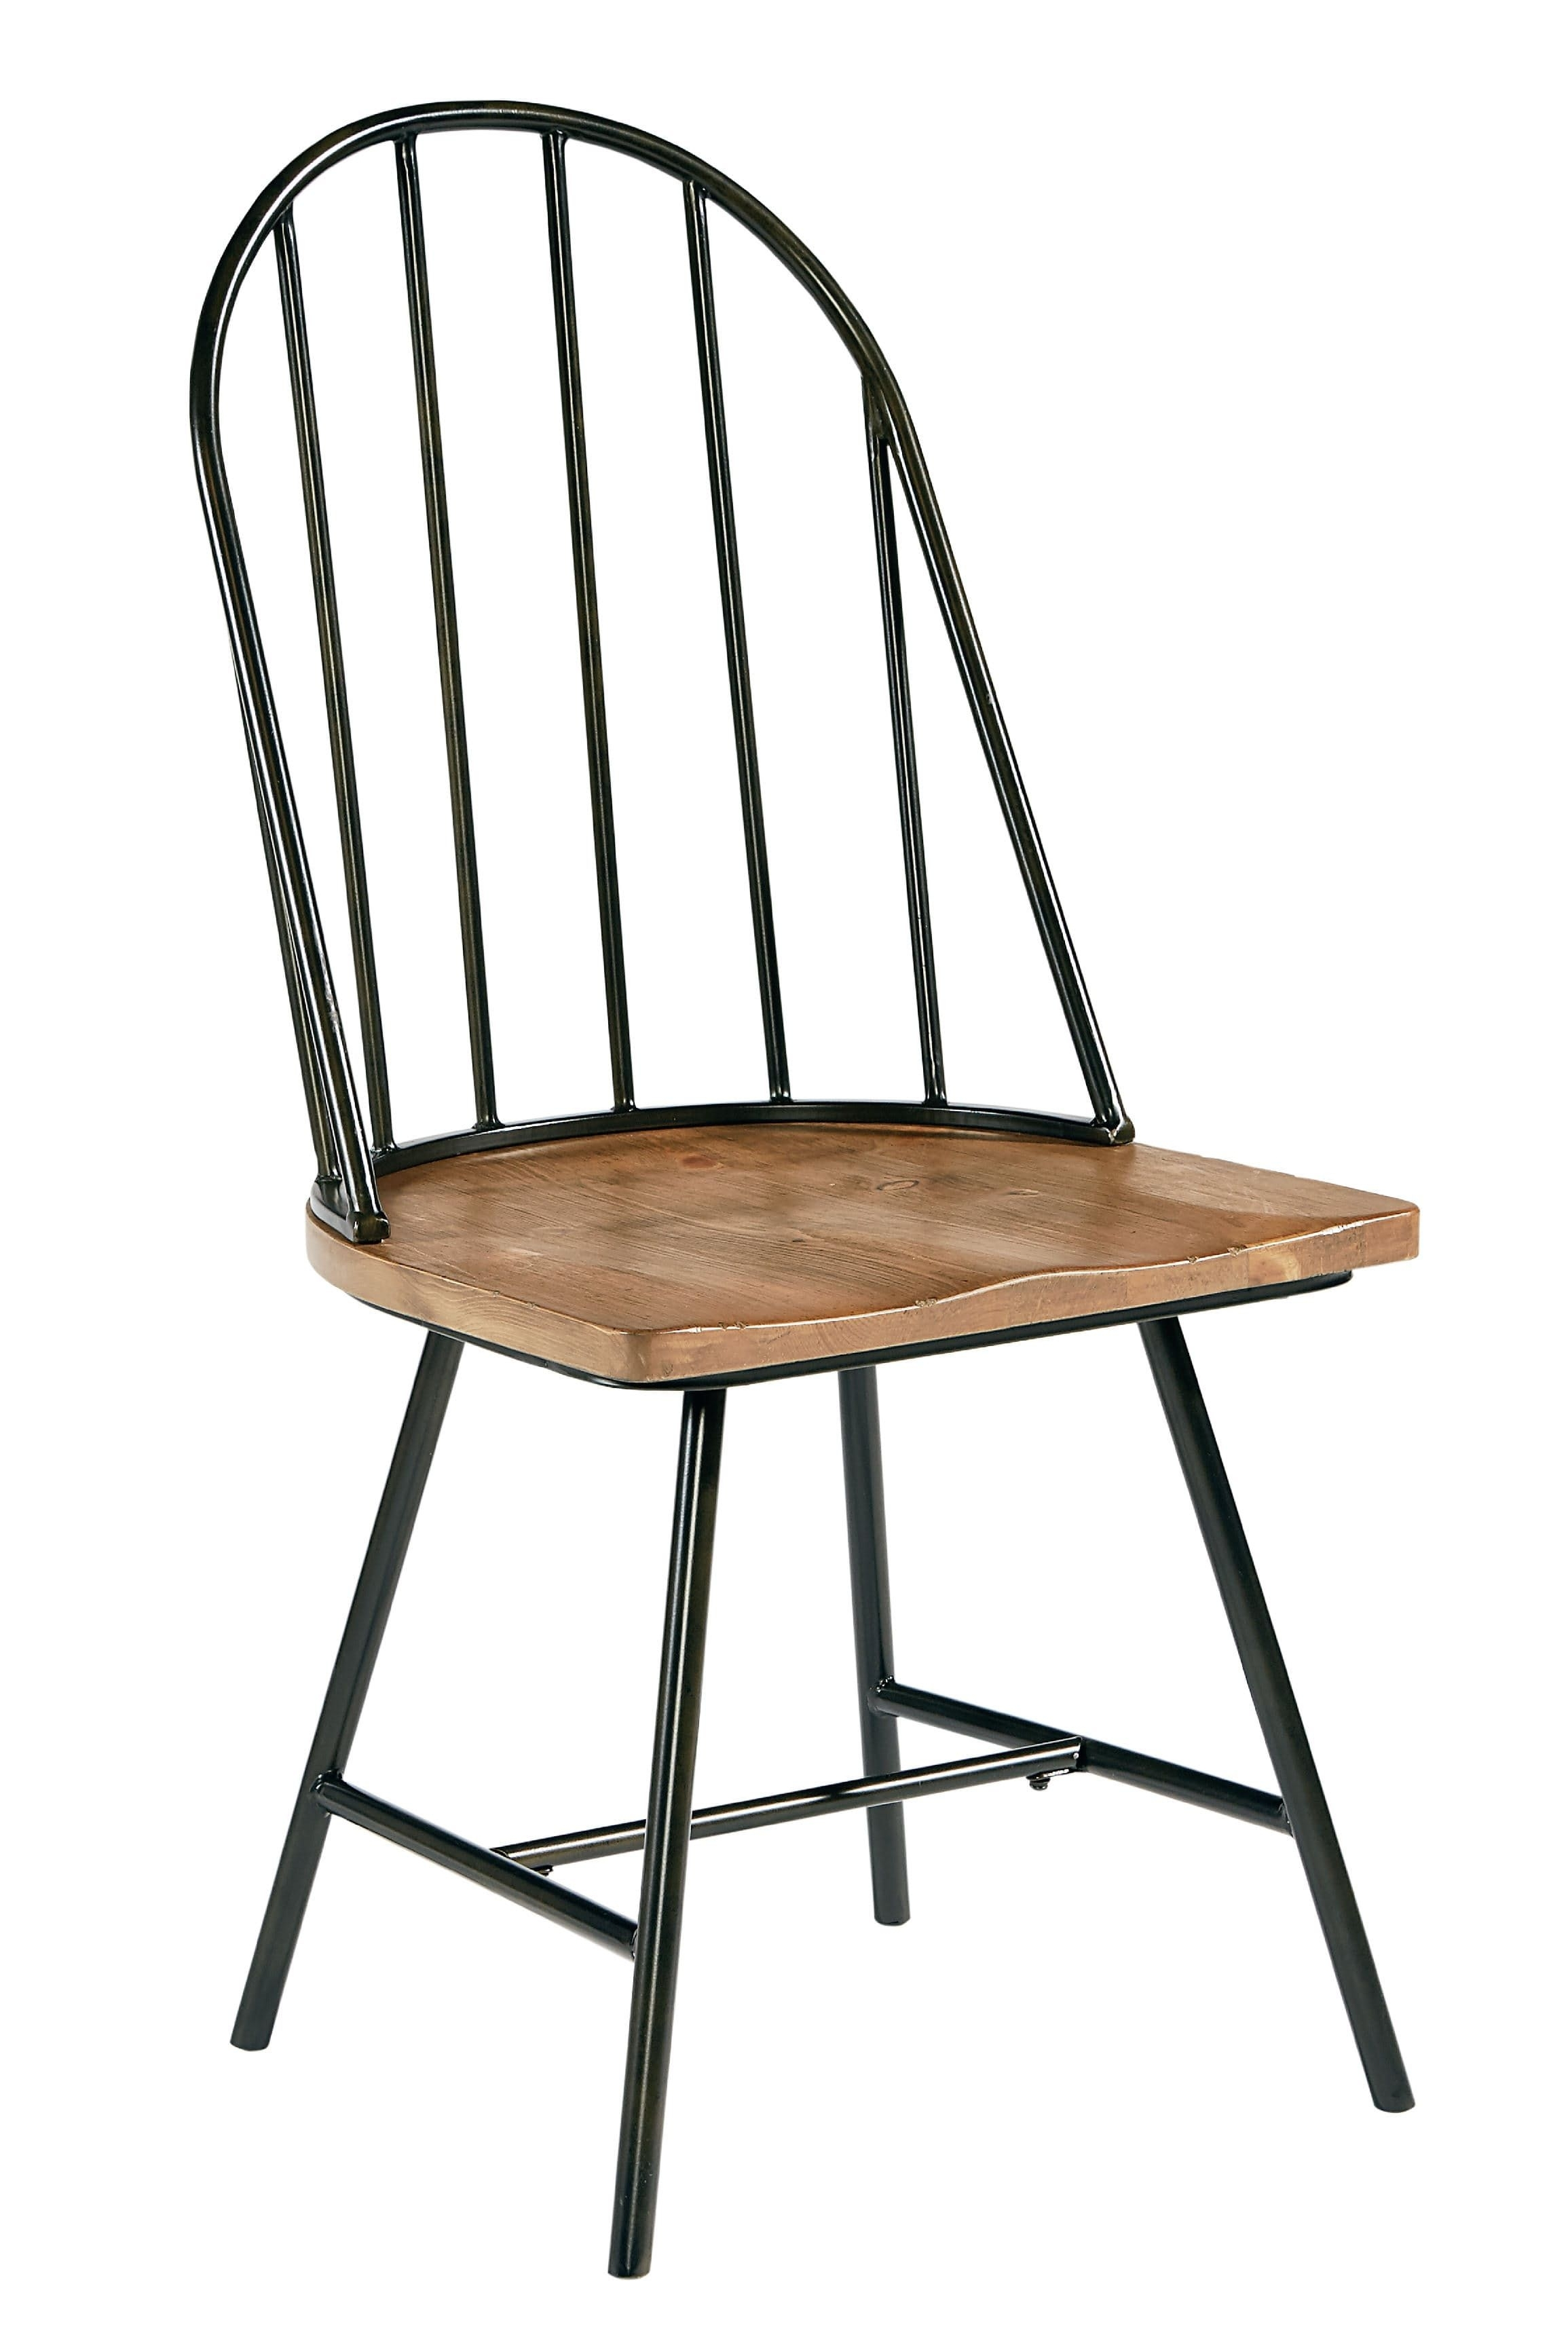 Inspiration about Most Recently Released Magnolia Home Molded Shell Saddle Side Chairs With Magnolia Home – Windsor Metal And Wood Hoop Chair St:461600 (#7 of 20)